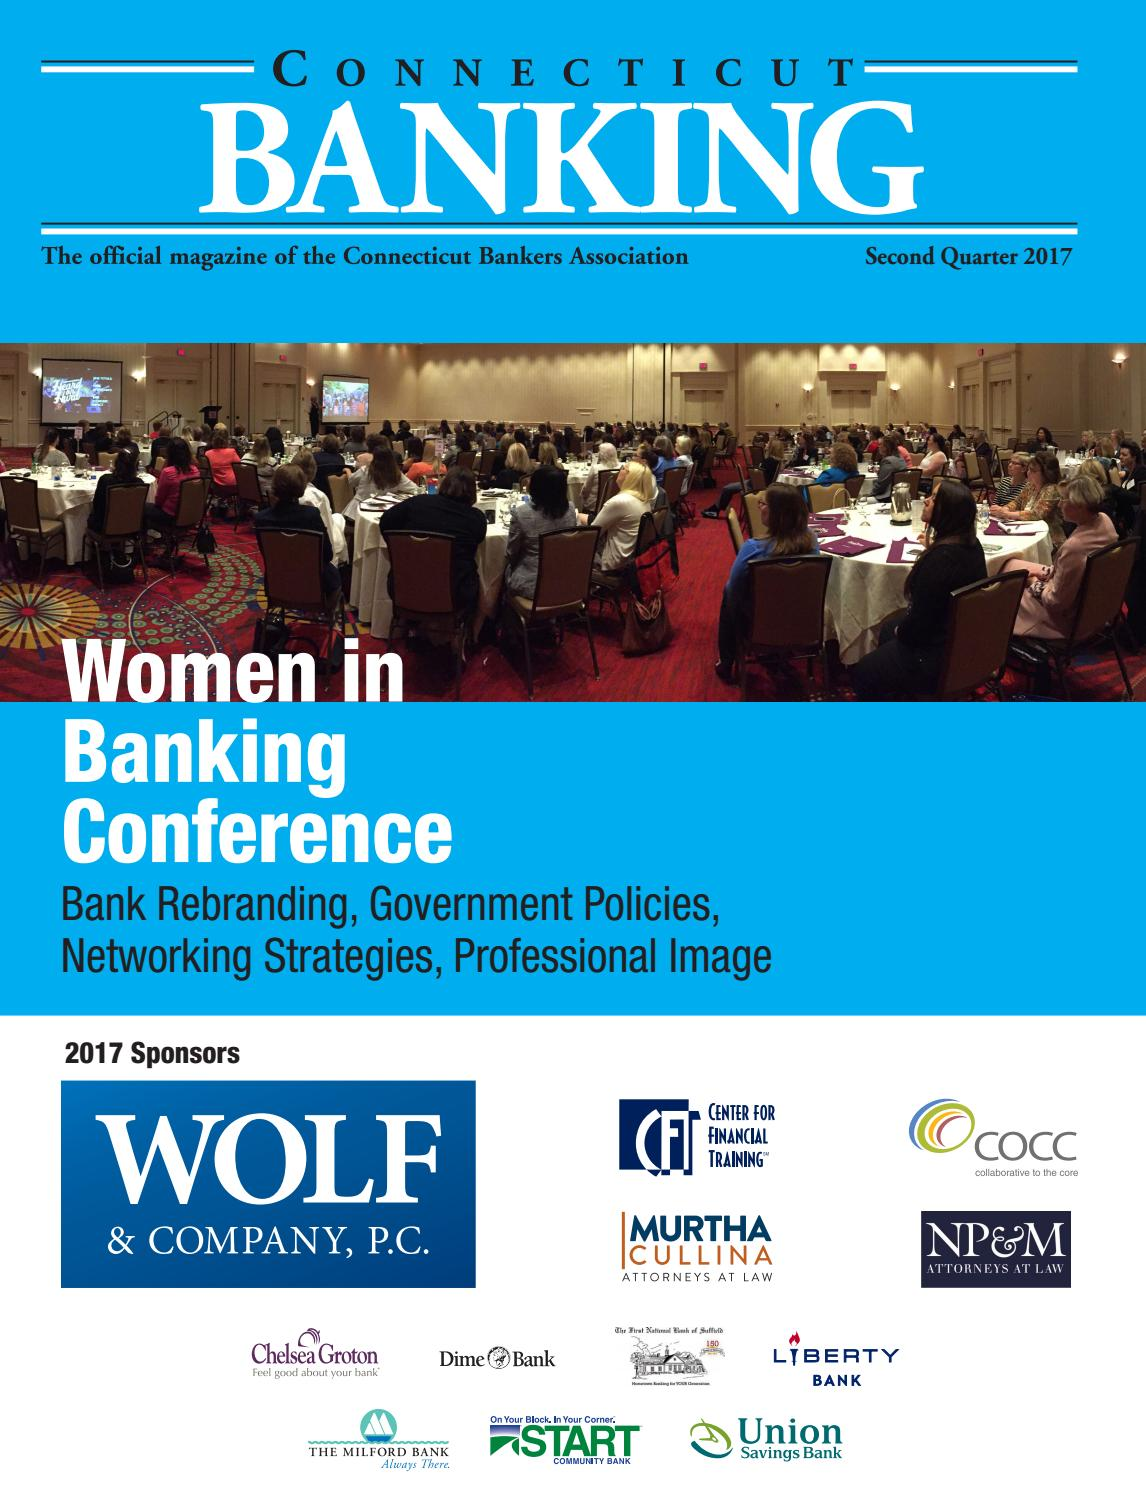 Connecticut Banking 2Q 2017 by The Warren Group - issuu